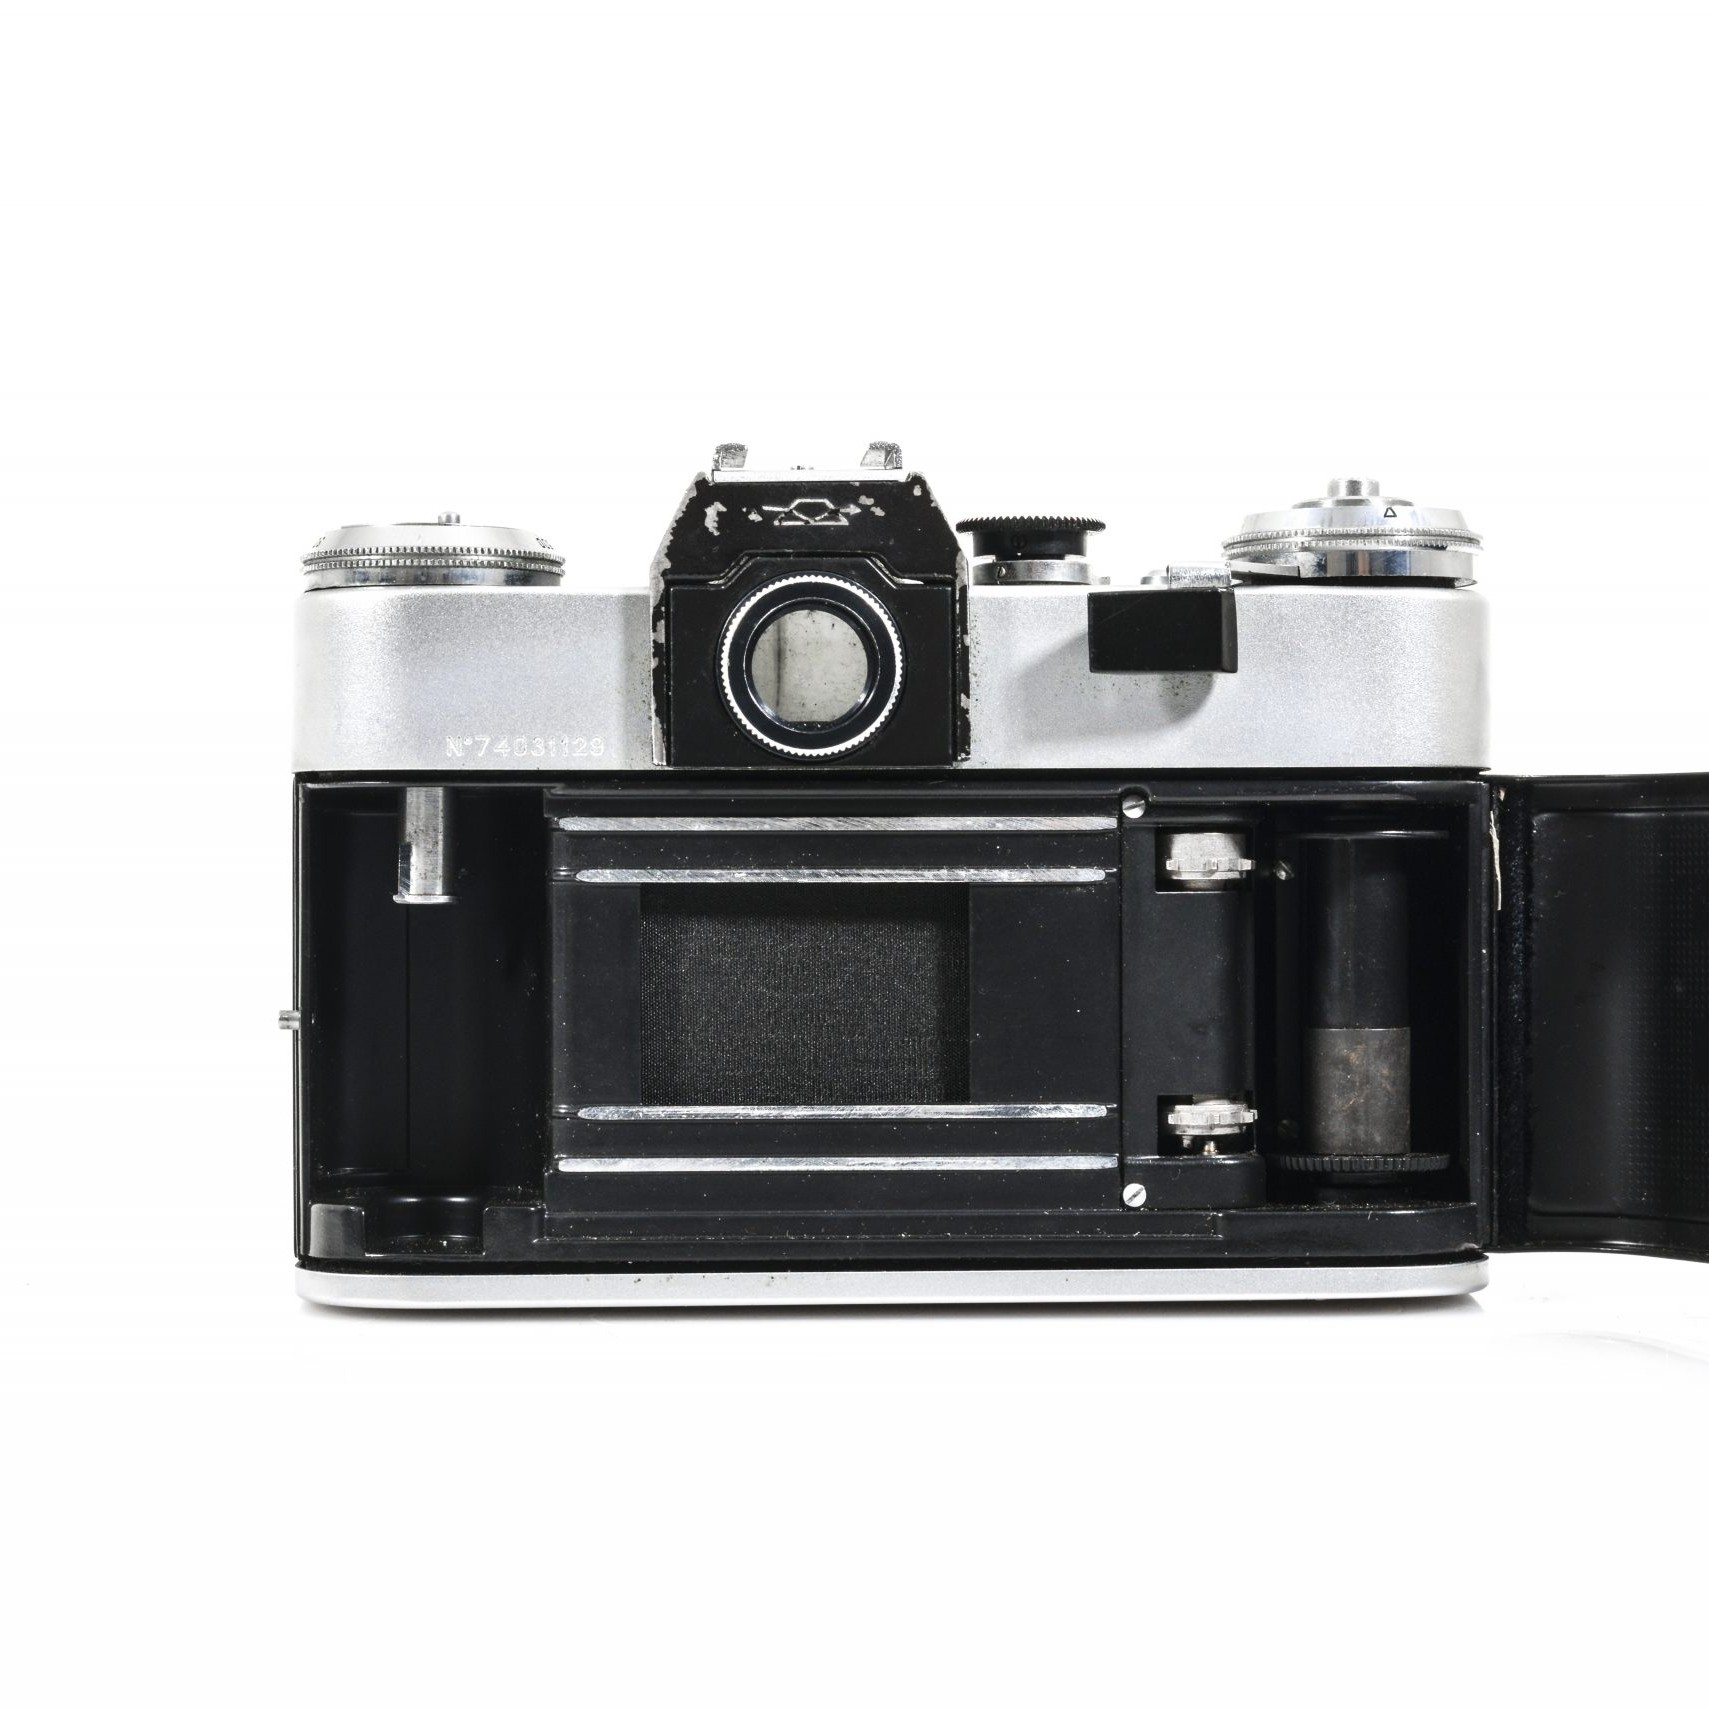 Stunning Zenit E 35mm Film Camera with Helios 44m 2/58 Lens (Excellent condition – Tested and Working)